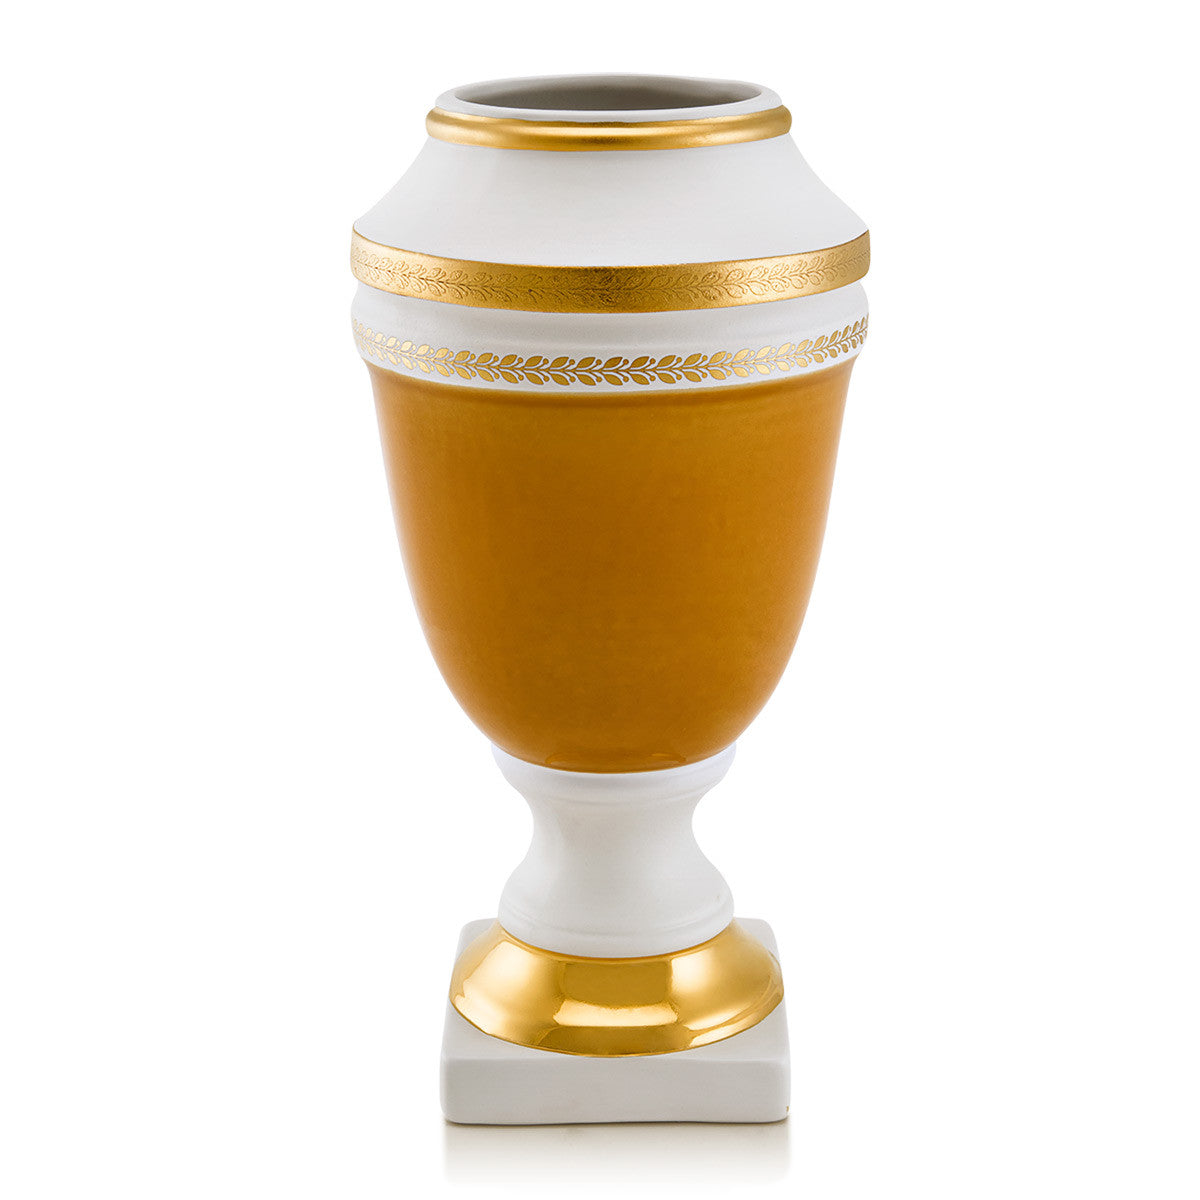 Ceramic vase with gold greek | Arcade